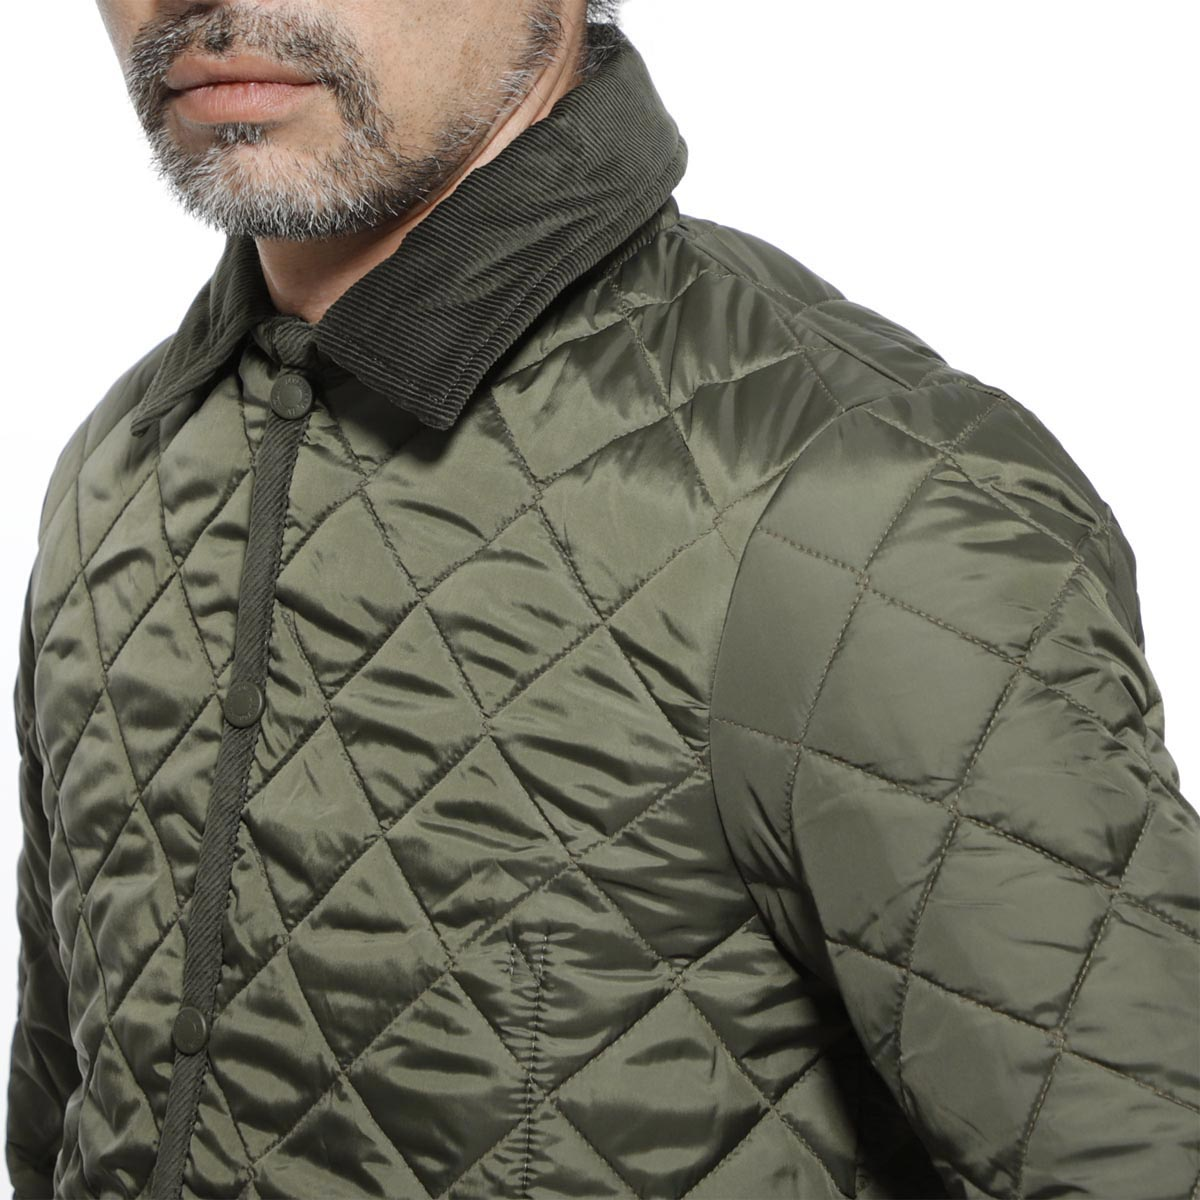 LAVENHAM quilting jacket green men outer cold protection winter clothing quilting jacket British Scottish British raydon aw15 7 0046 9902 RAYDON